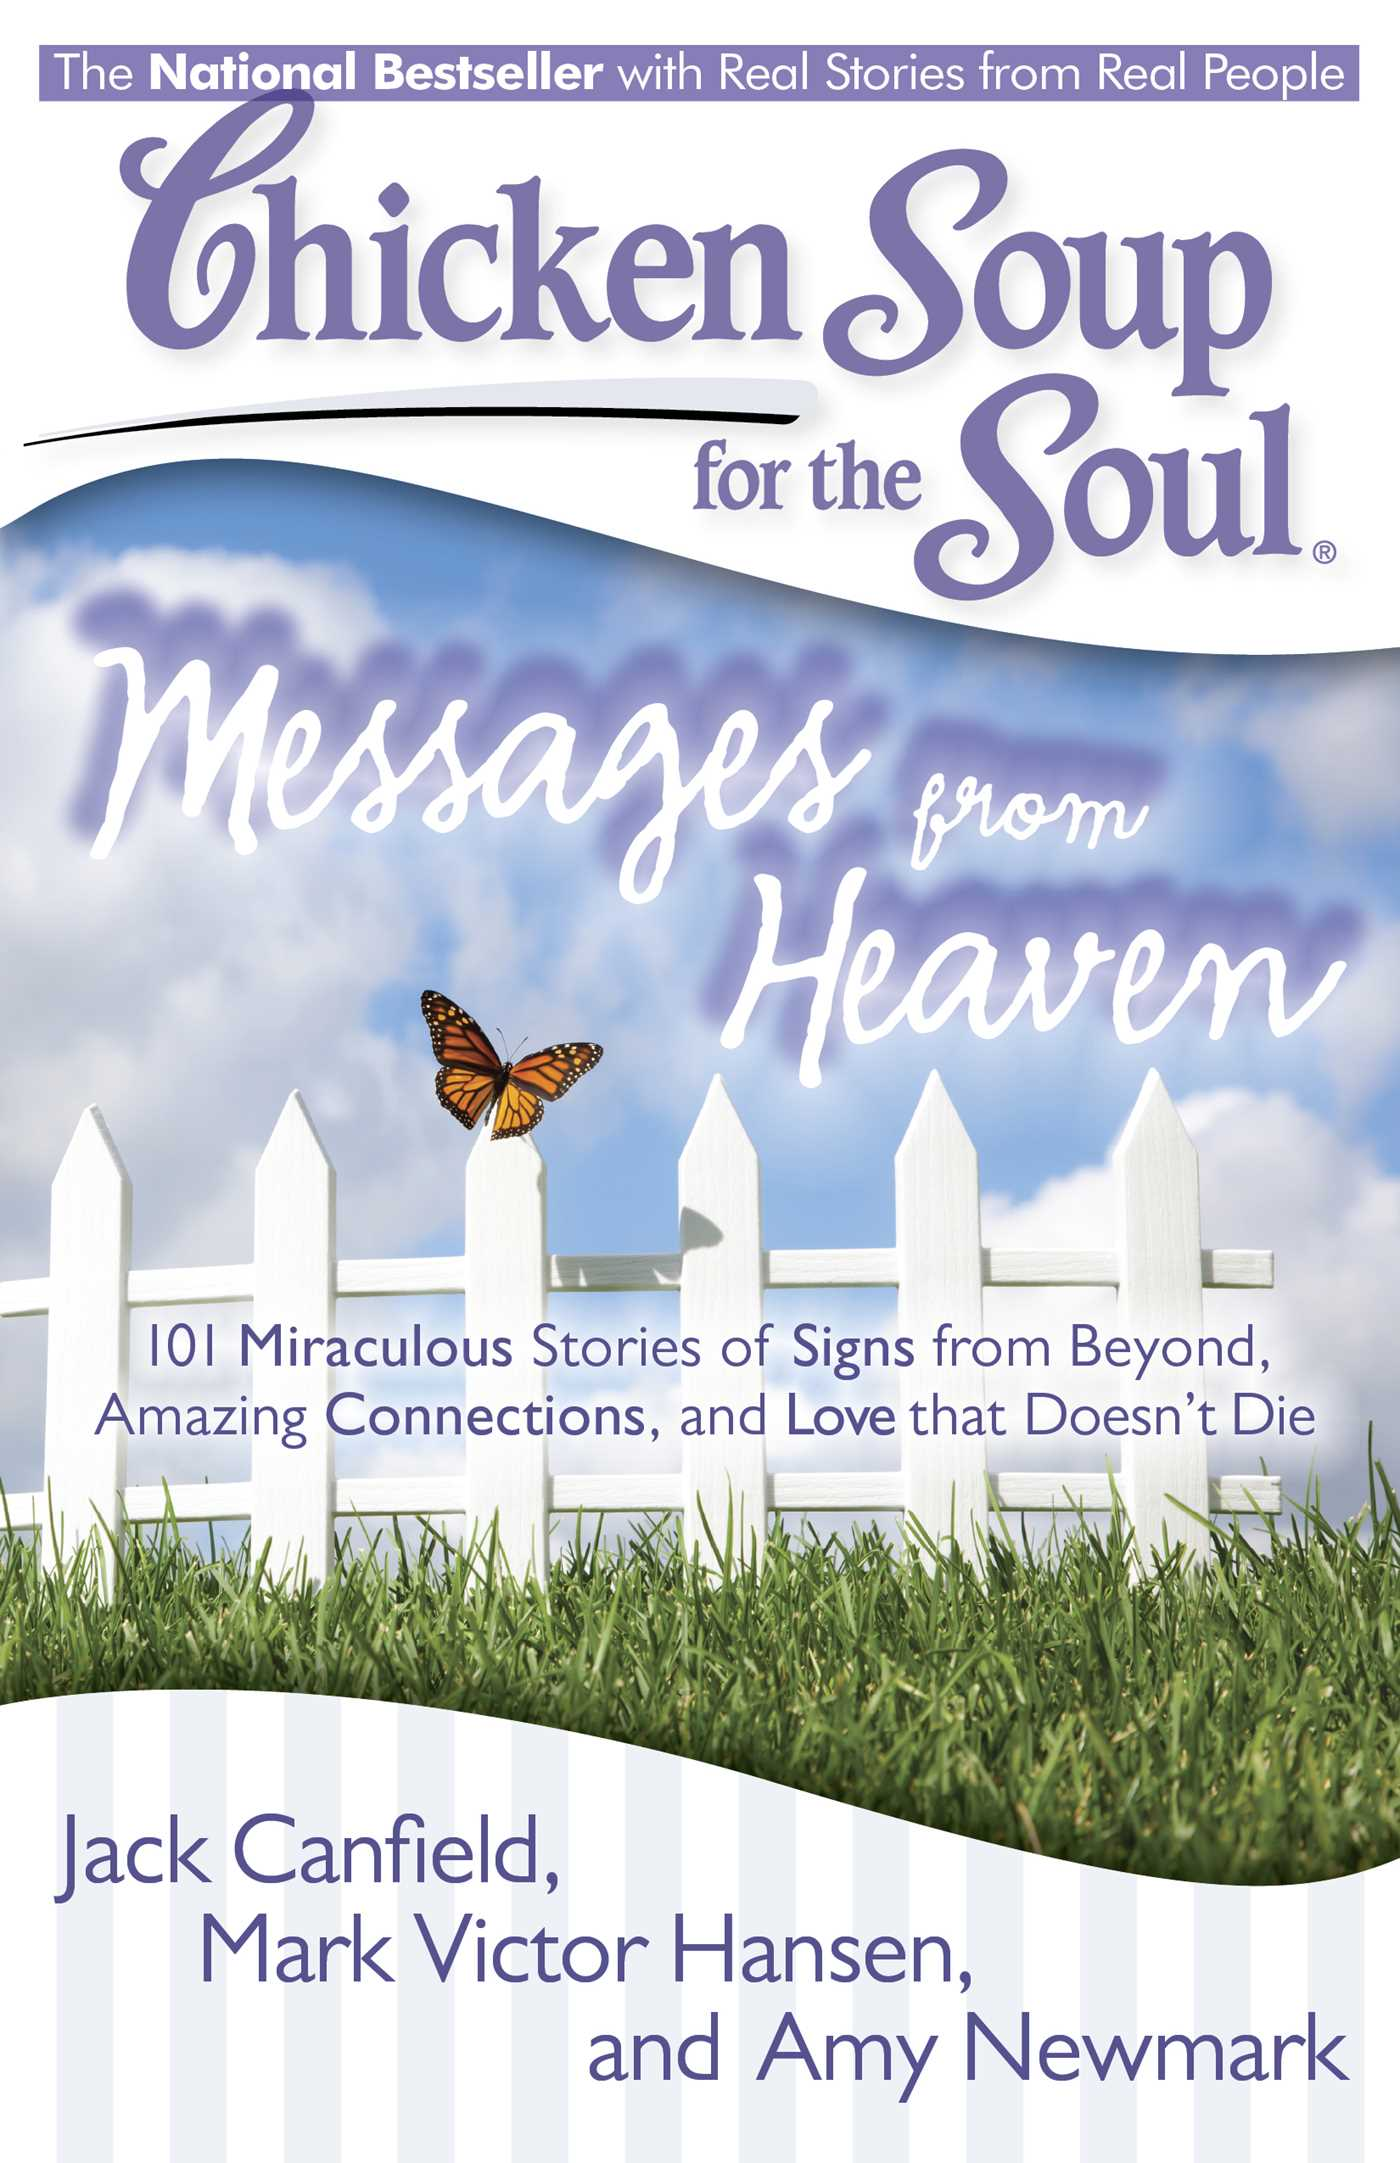 Chicken-soup-for-the-soul-messages-from-heaven-9781611592054_hr